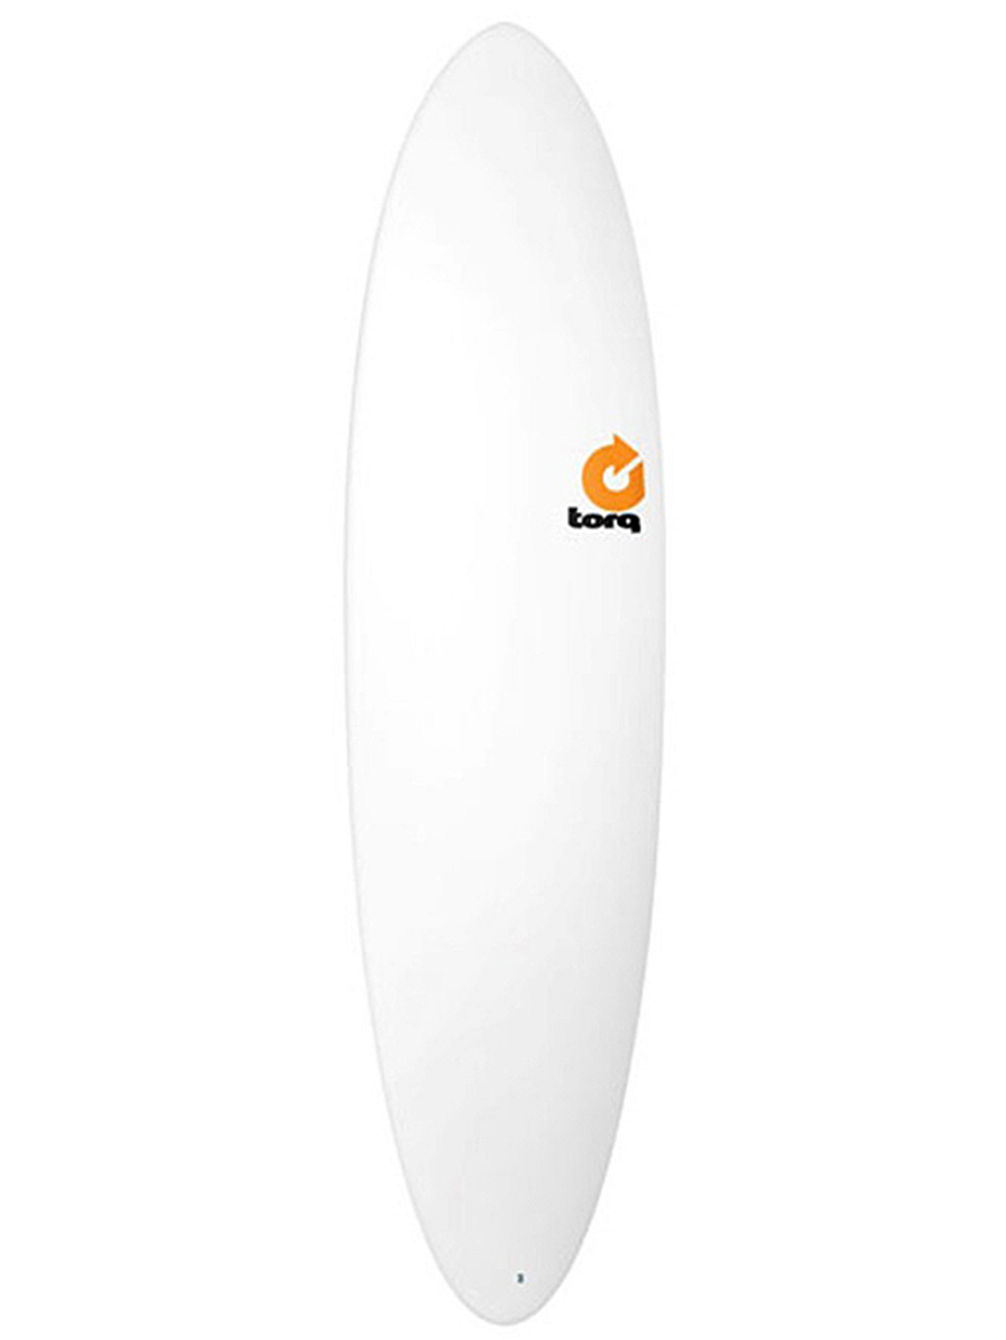 Epoxy 7.2 Funboard White Surfboard